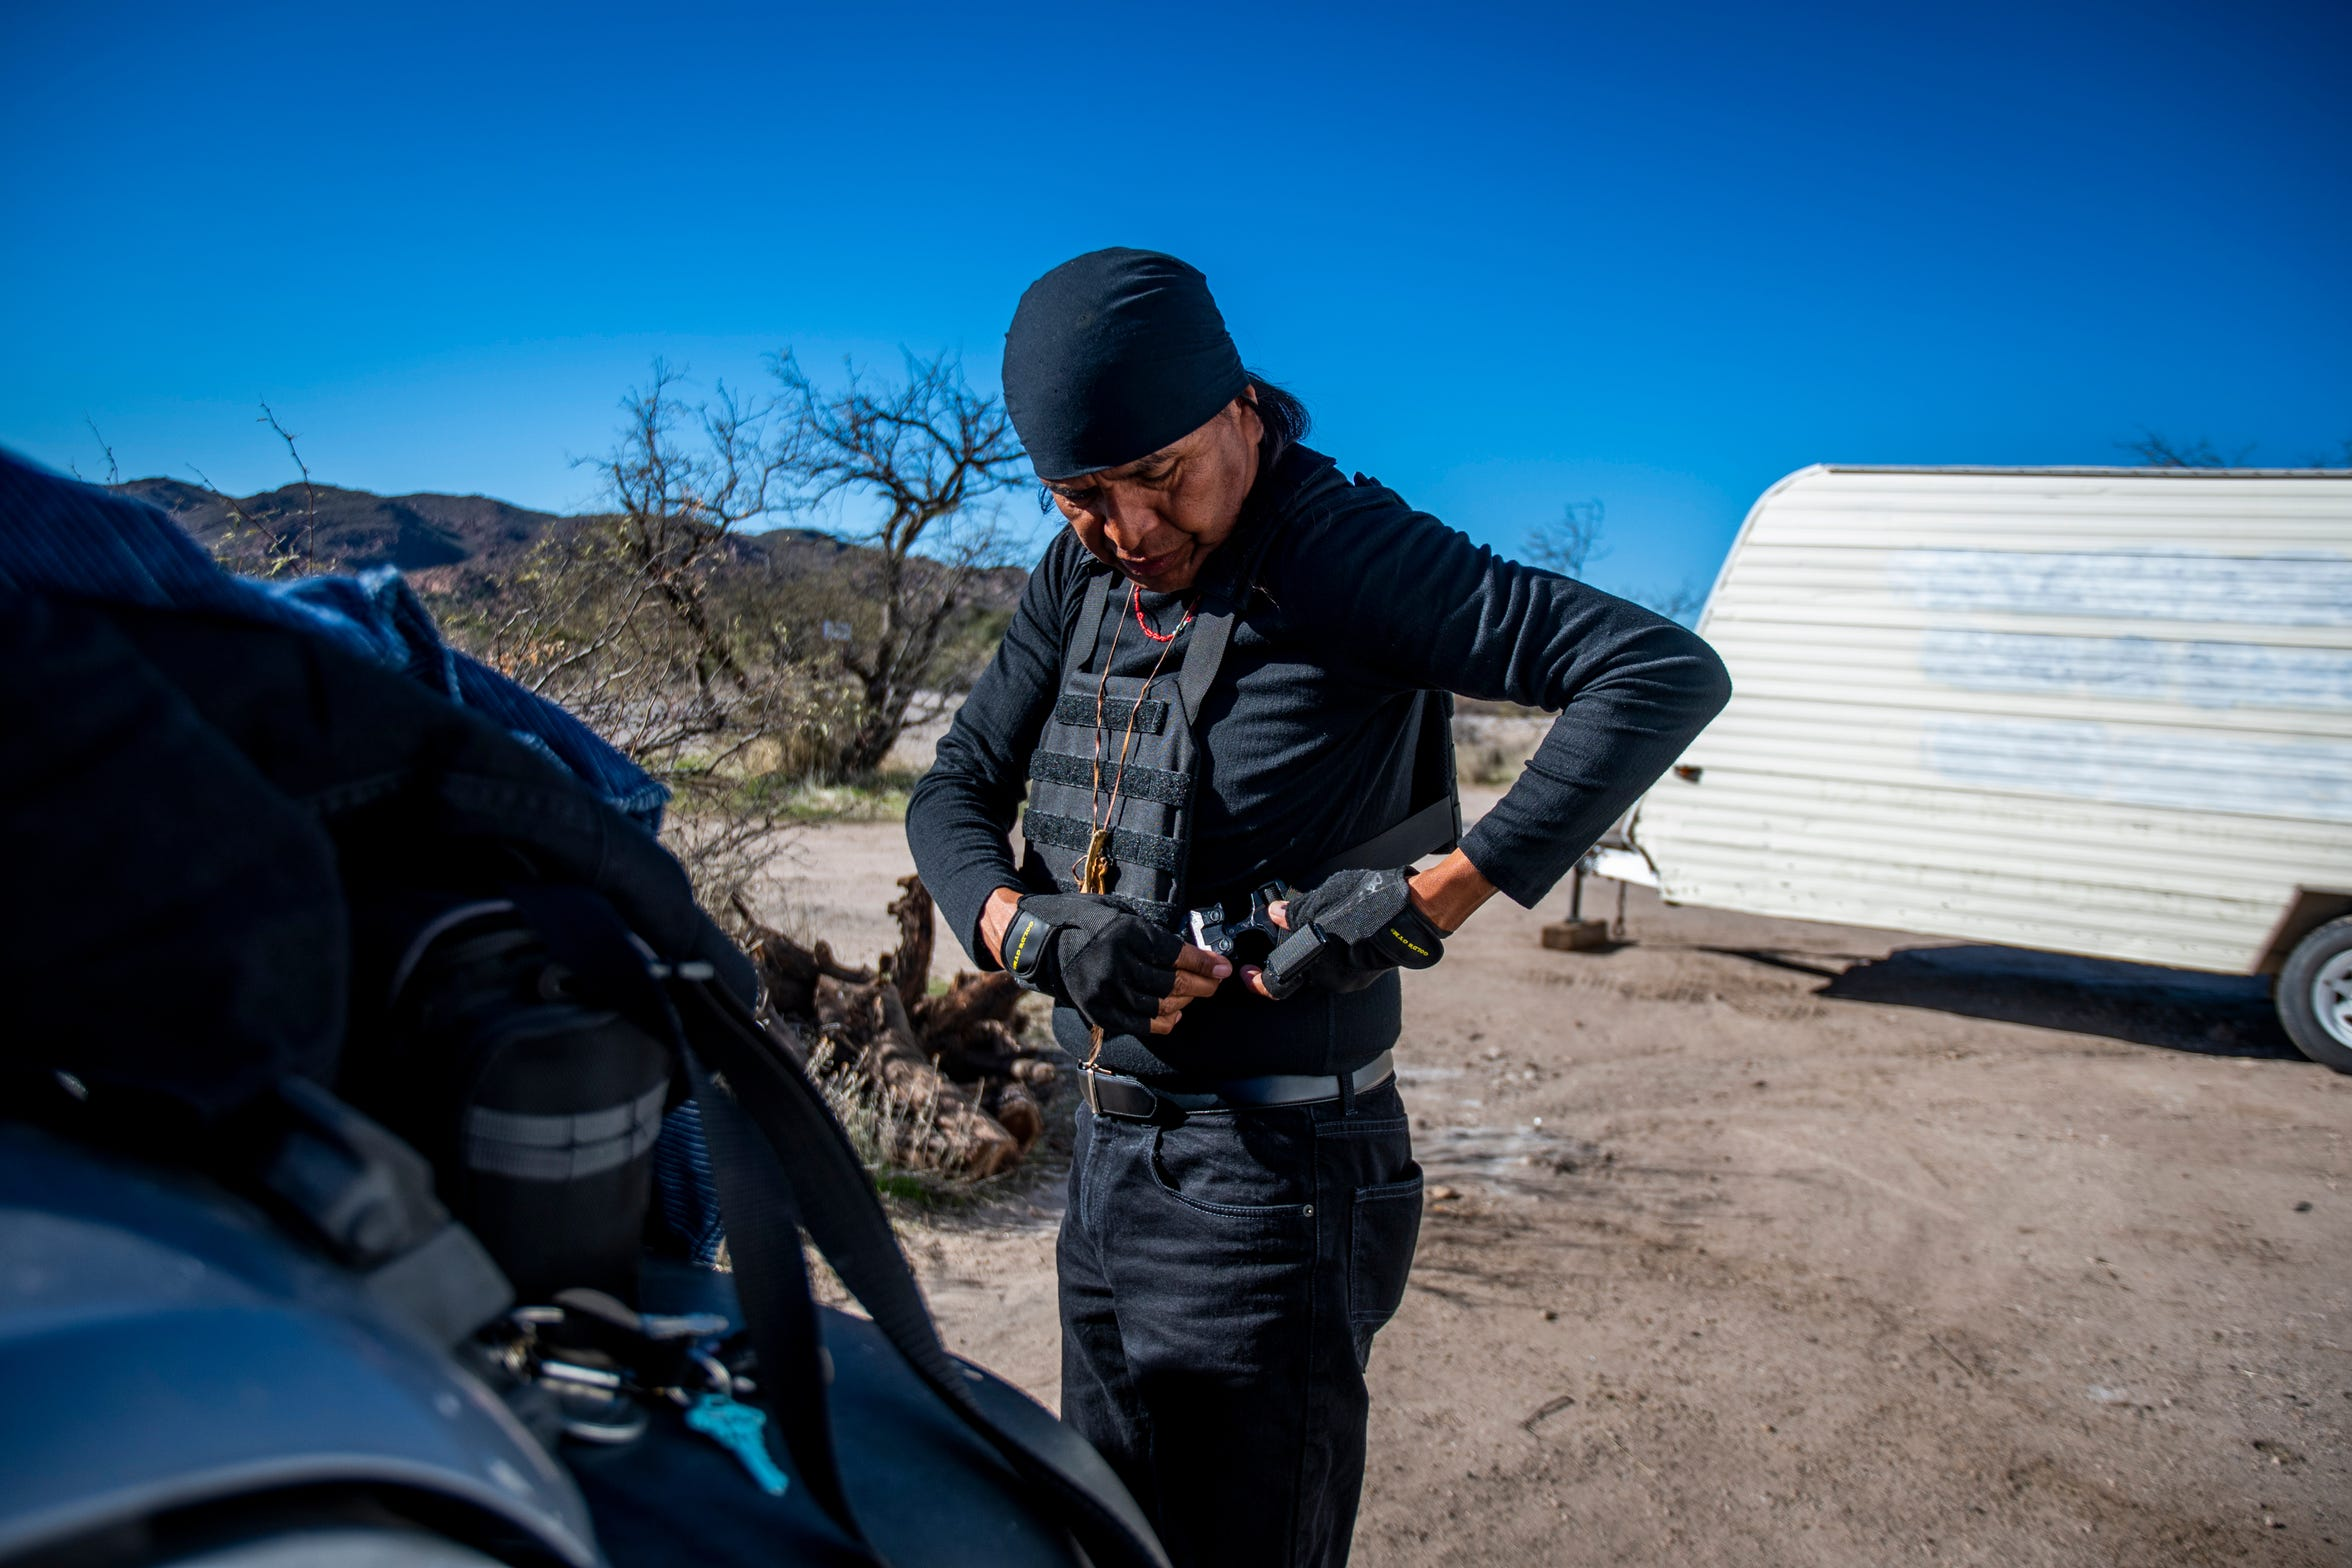 Wendsler Nosie puts on his bullet-proof vest before driving around the area at Oak Flat on Friday, Dec. 20, 2019.